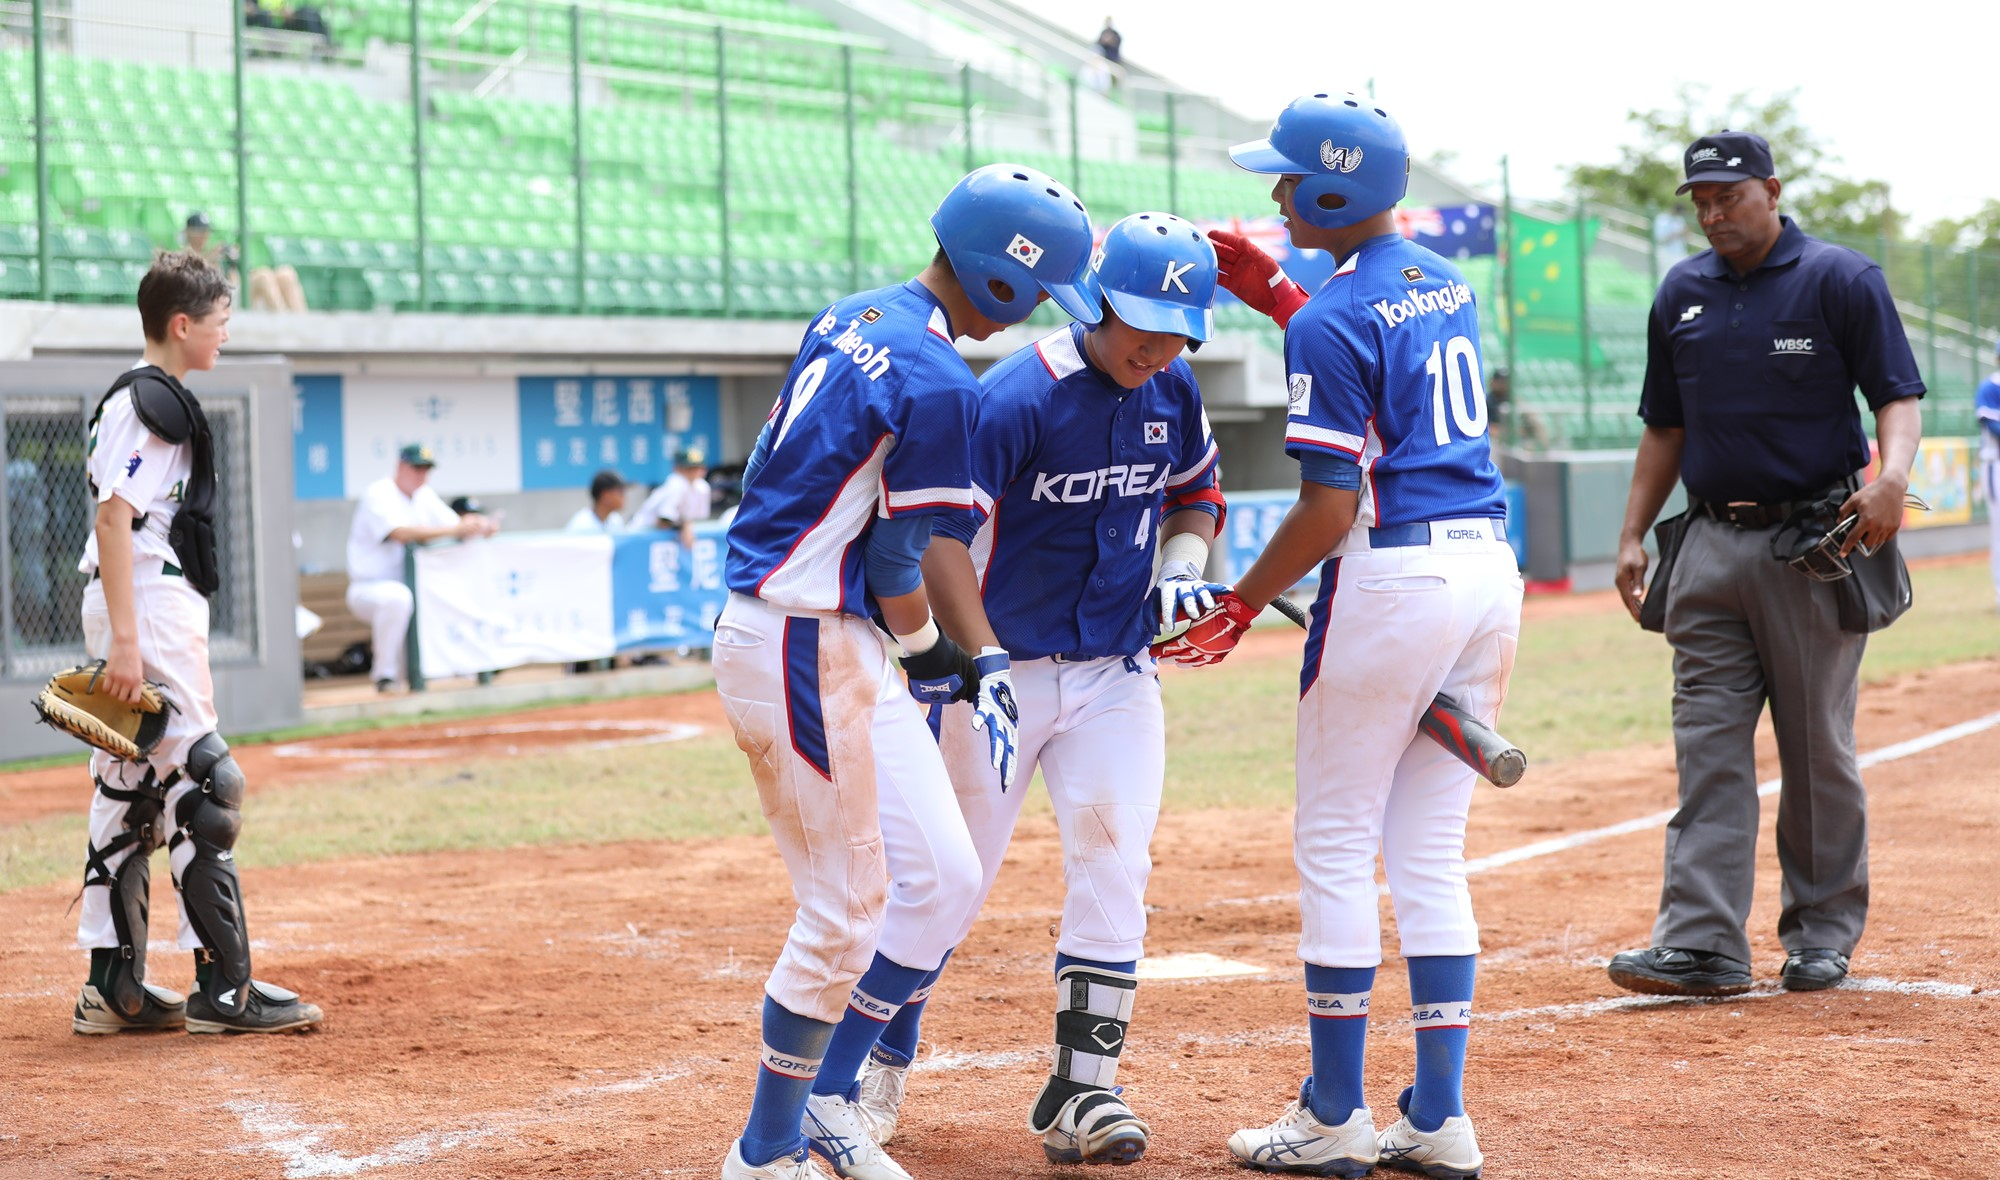 Lee Jaejun welcomed home after his home run